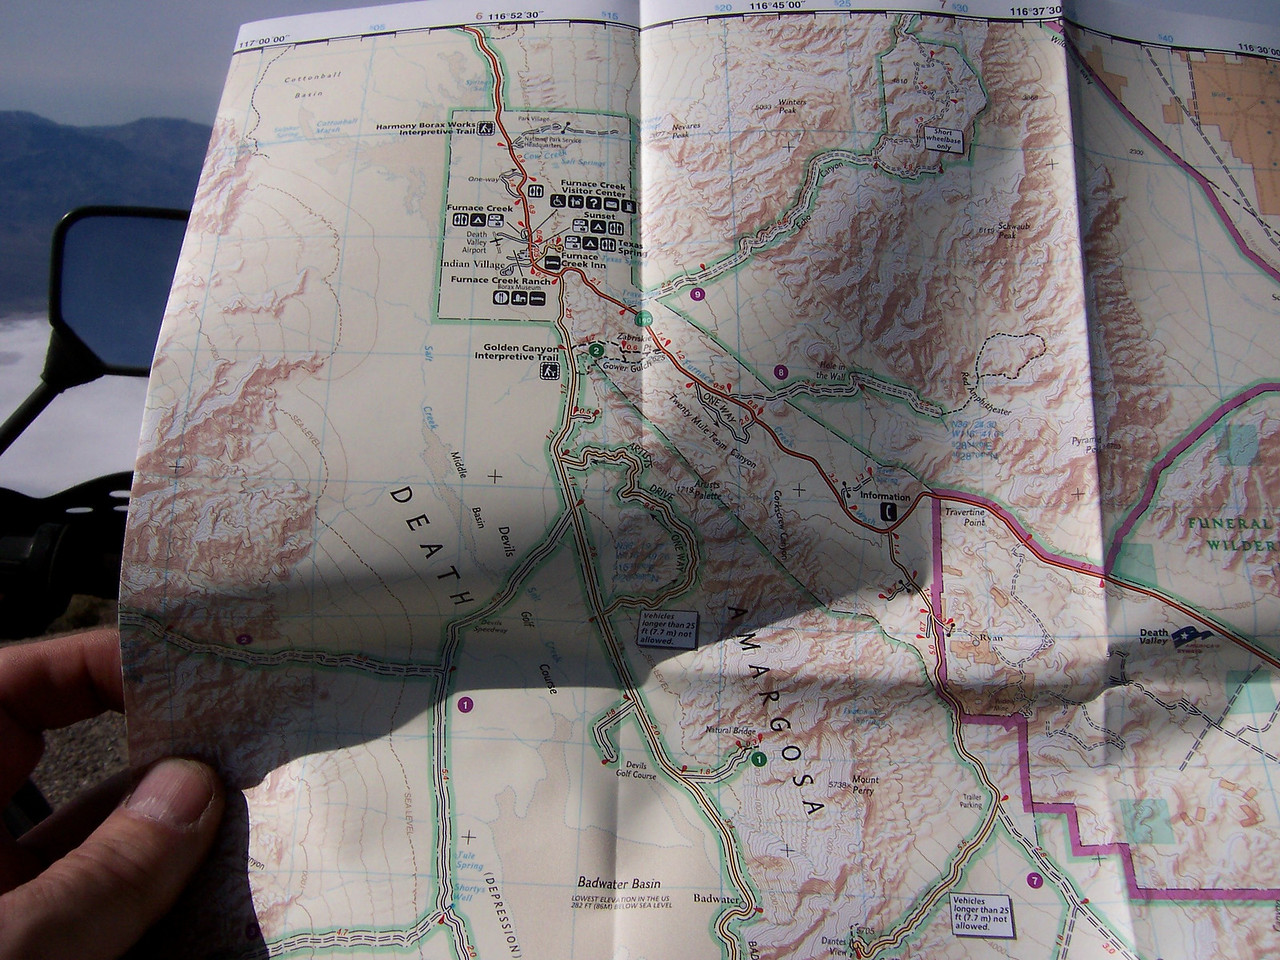 """Echo Canyon is in the upper right of the map & Twenty Mule is where it says """"One Way'. We continued Southeast to Dantes View in the lower right, then off the map on the Greenwater Valley road."""